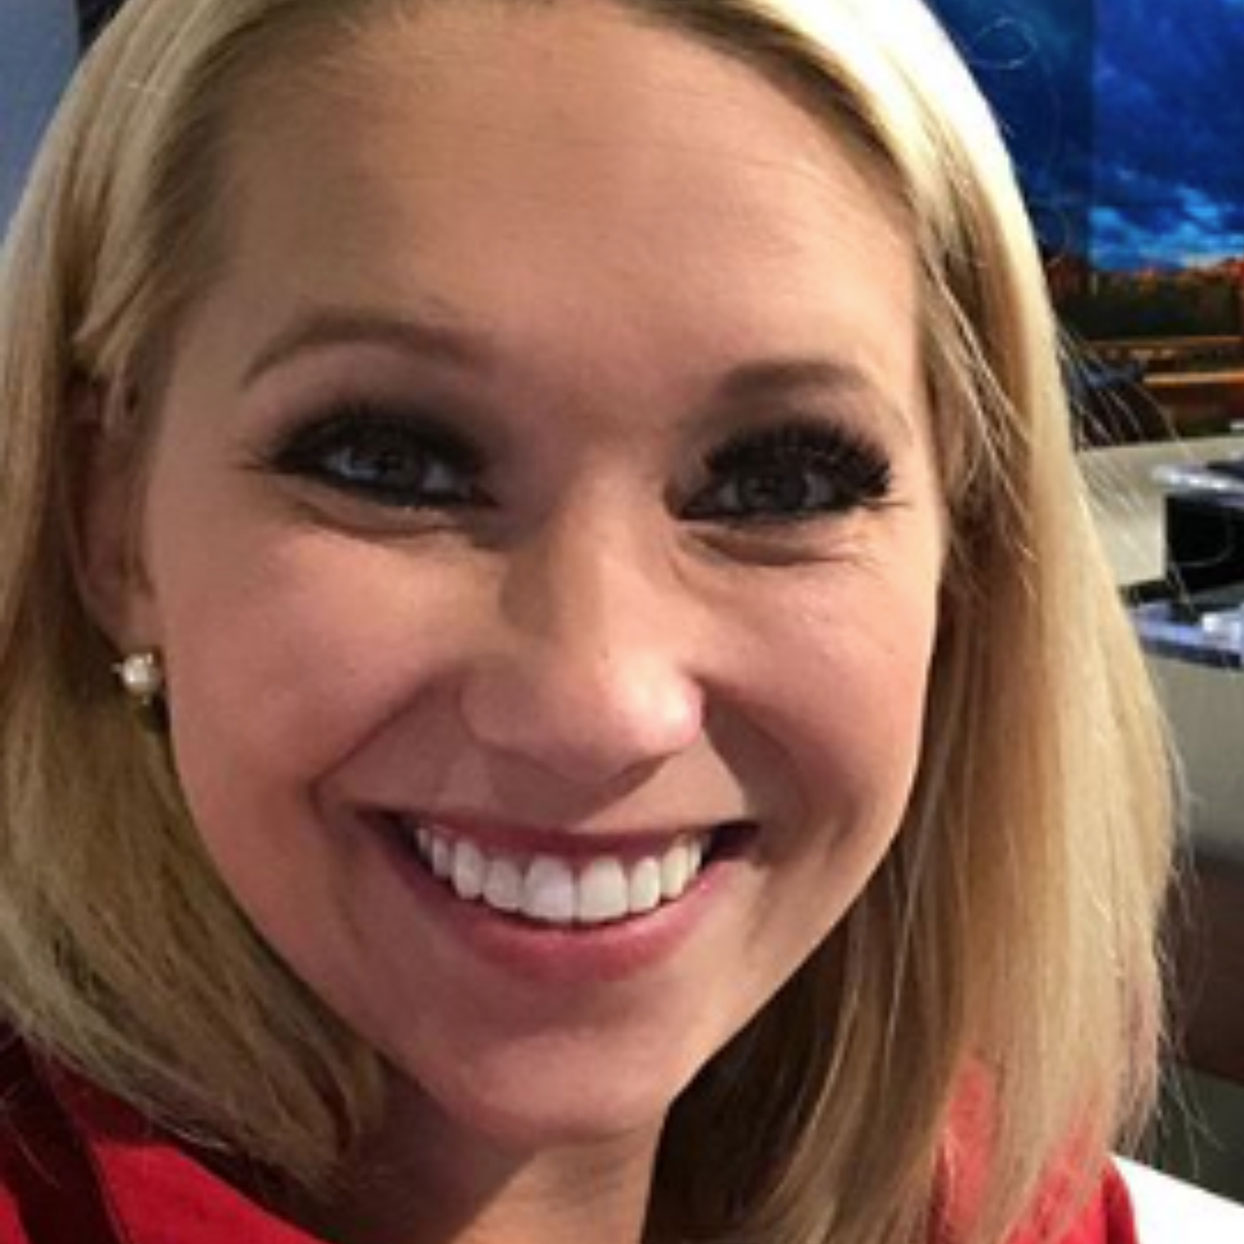 """A Troll Told This Meteorologist to Cover Her """"Stomach Bulge"""" and She Had the Best Response"""